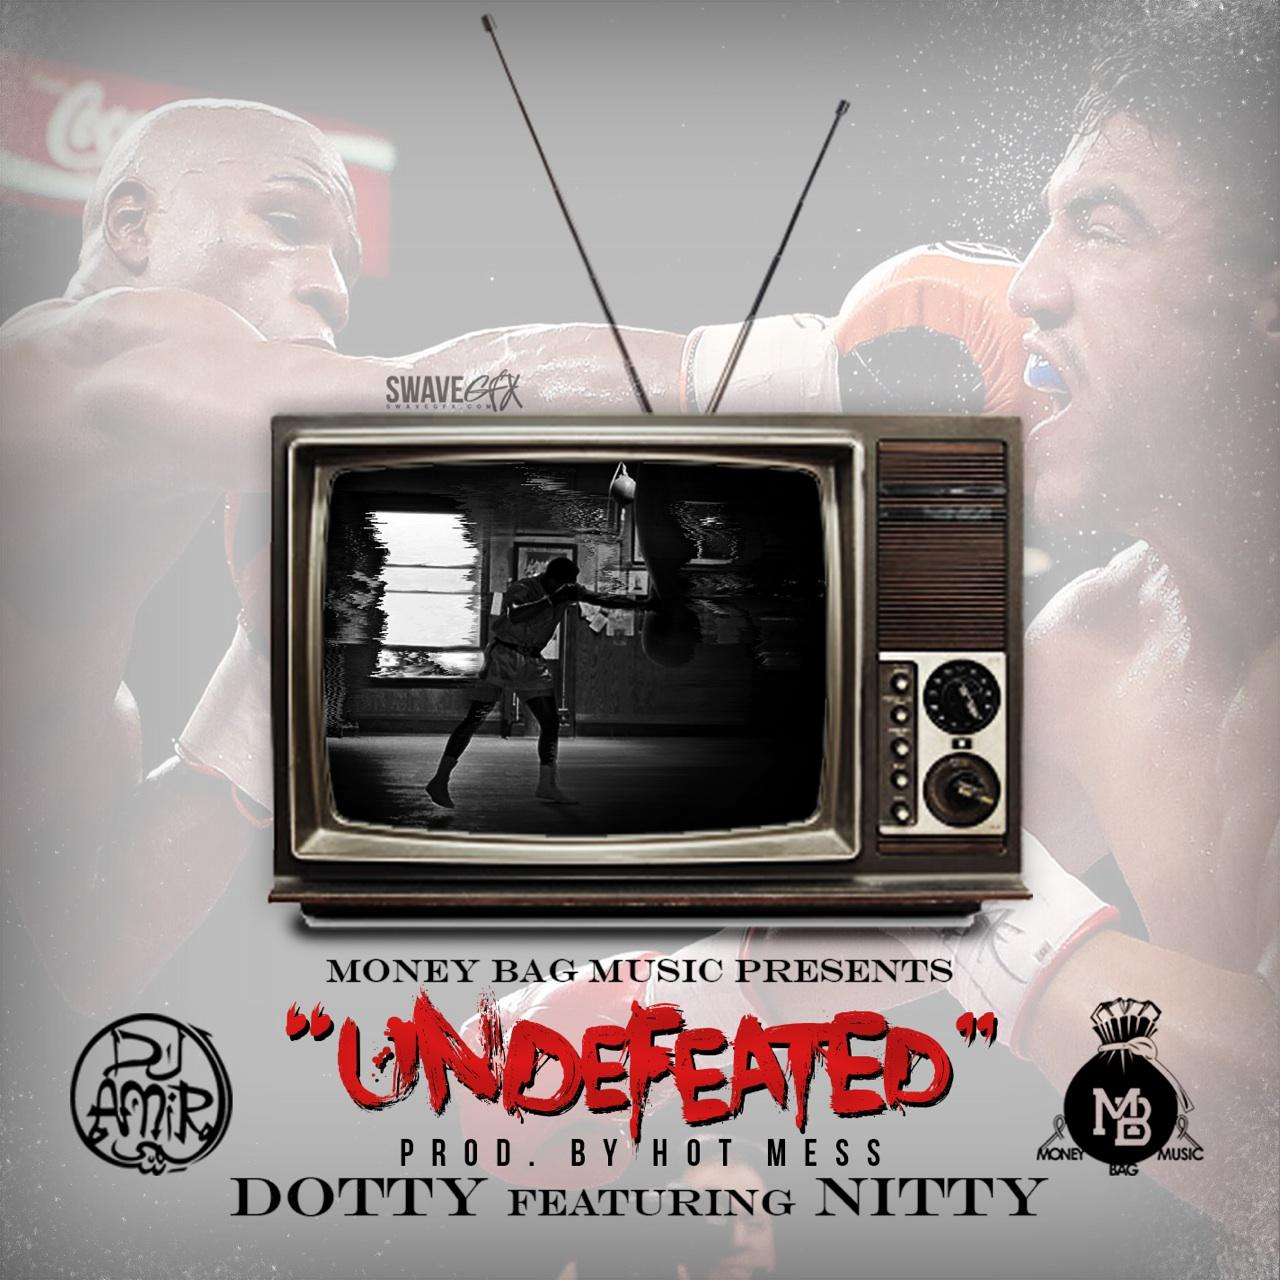 undefeated1 Nitty x Dot - Undeafeated